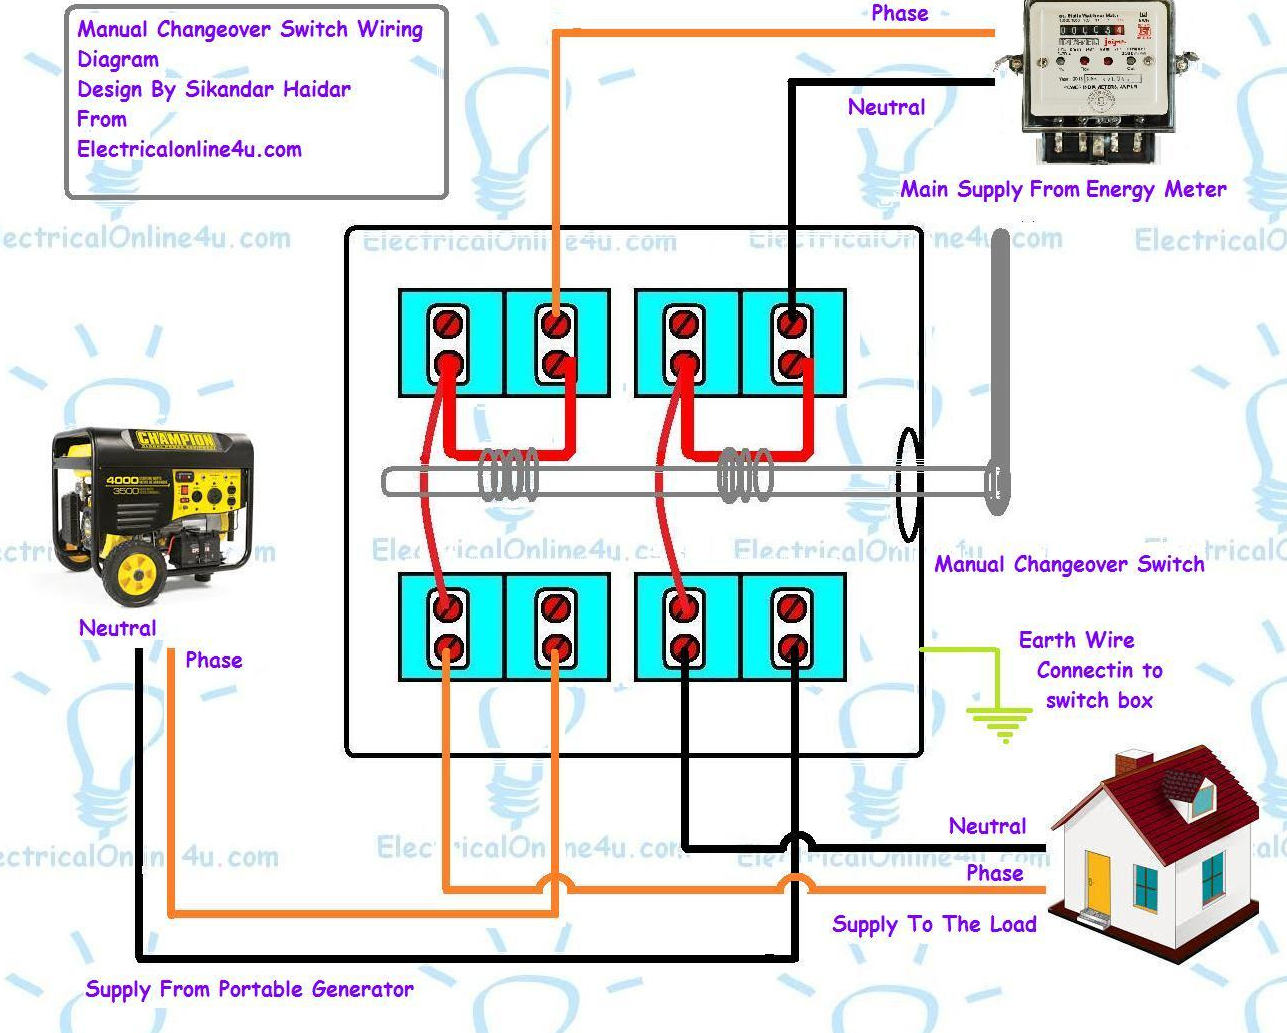 Manual    changeover    switch wiring    diagram    for portable    generator      projects in 2019   Transfer